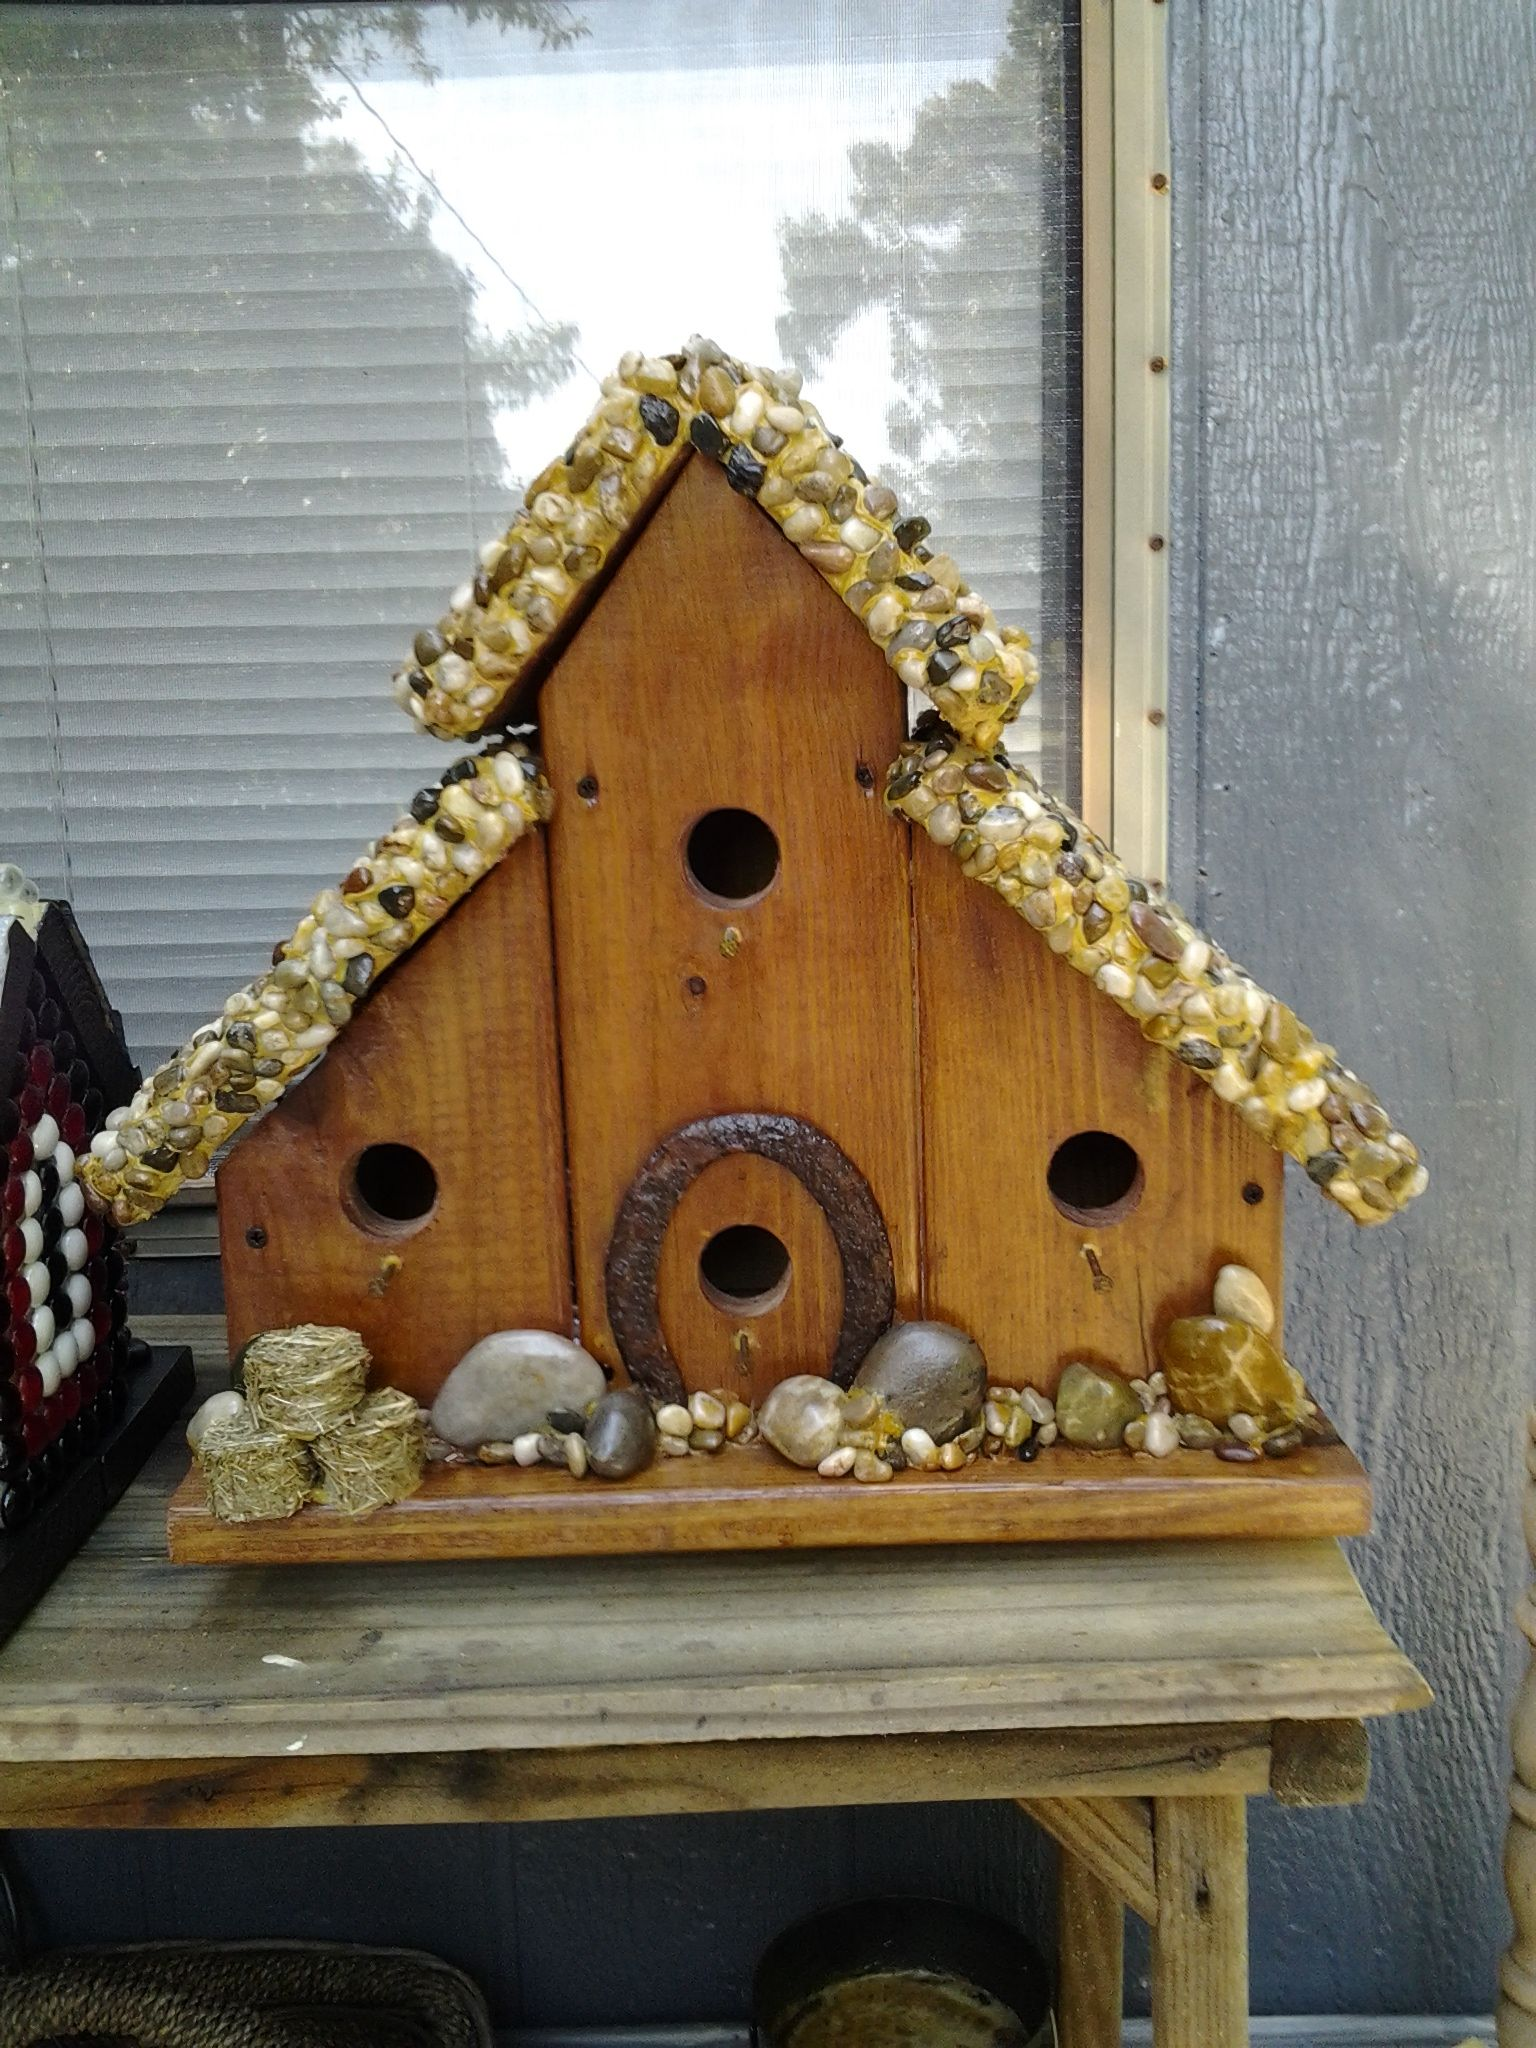 Mawmaws marvelous birdhouse created with the help of three